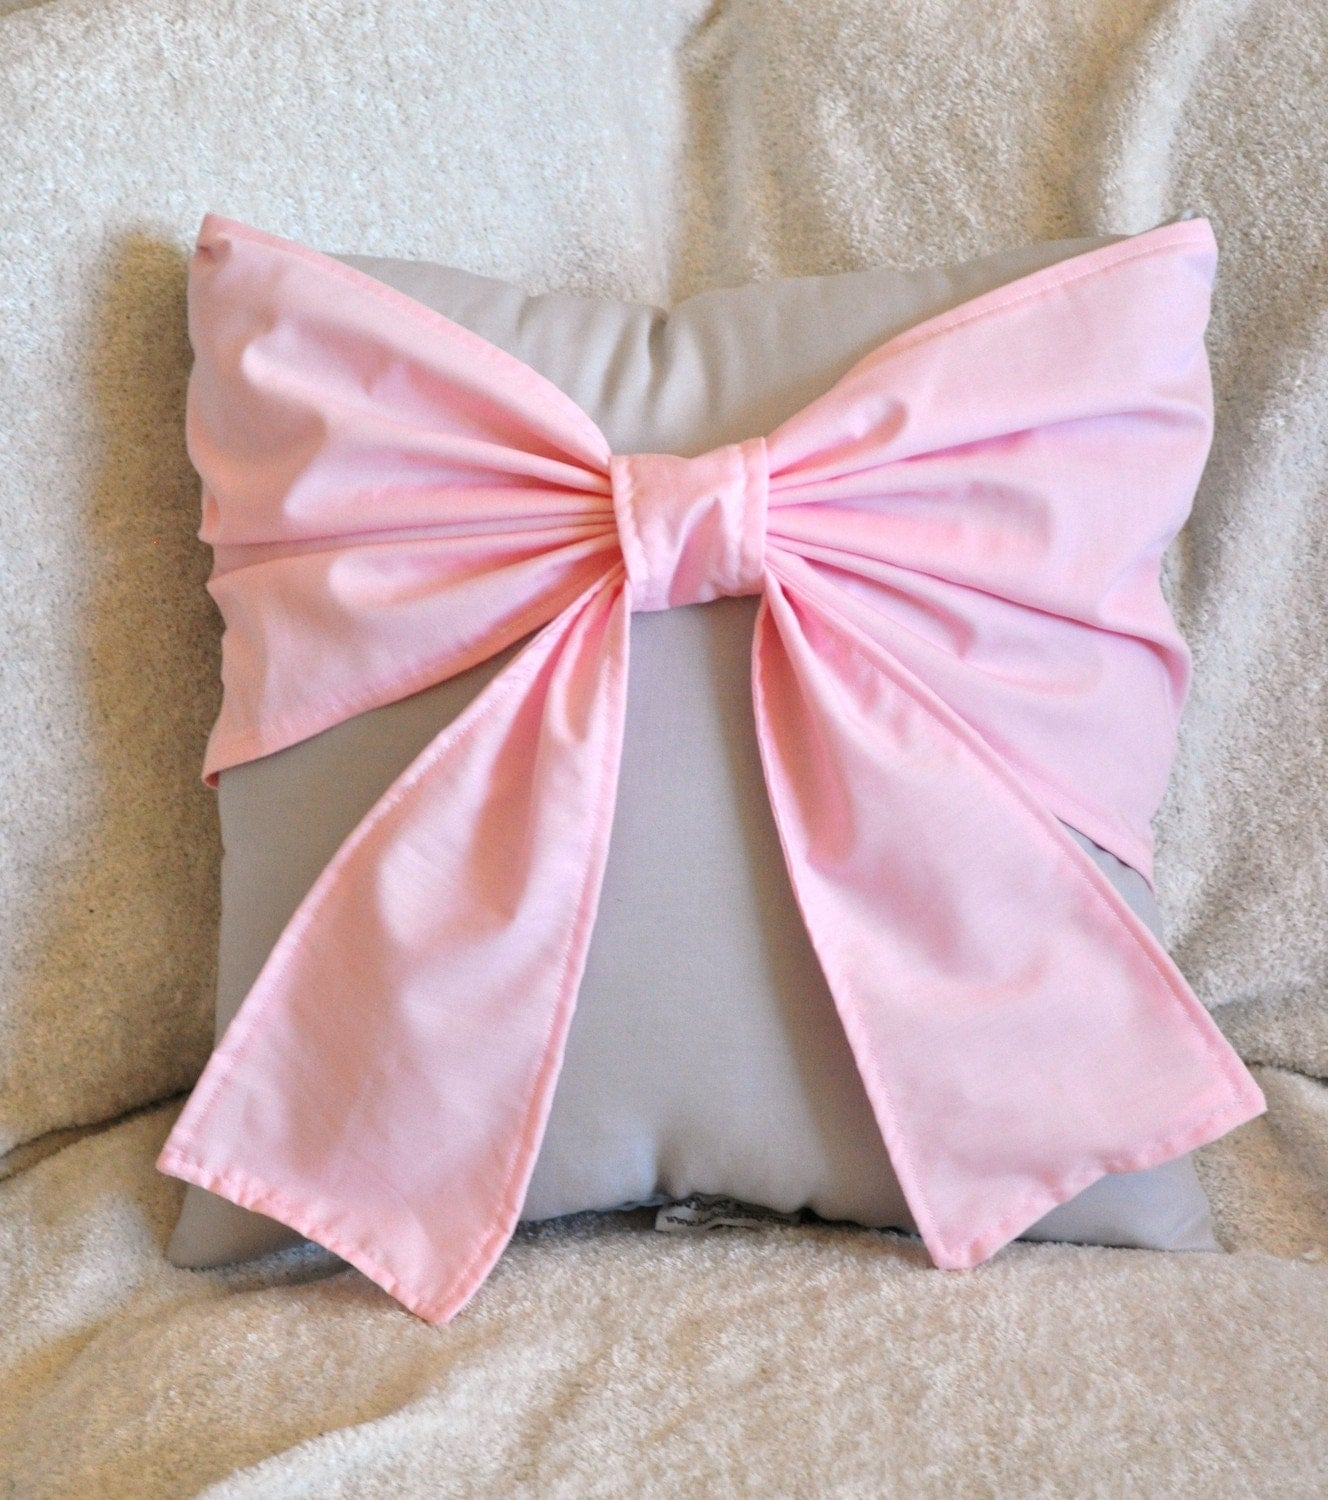 Decorative Pillow Pink : Throw Pillow Decorative Pillow Light Pink Big Bow by bedbuggs